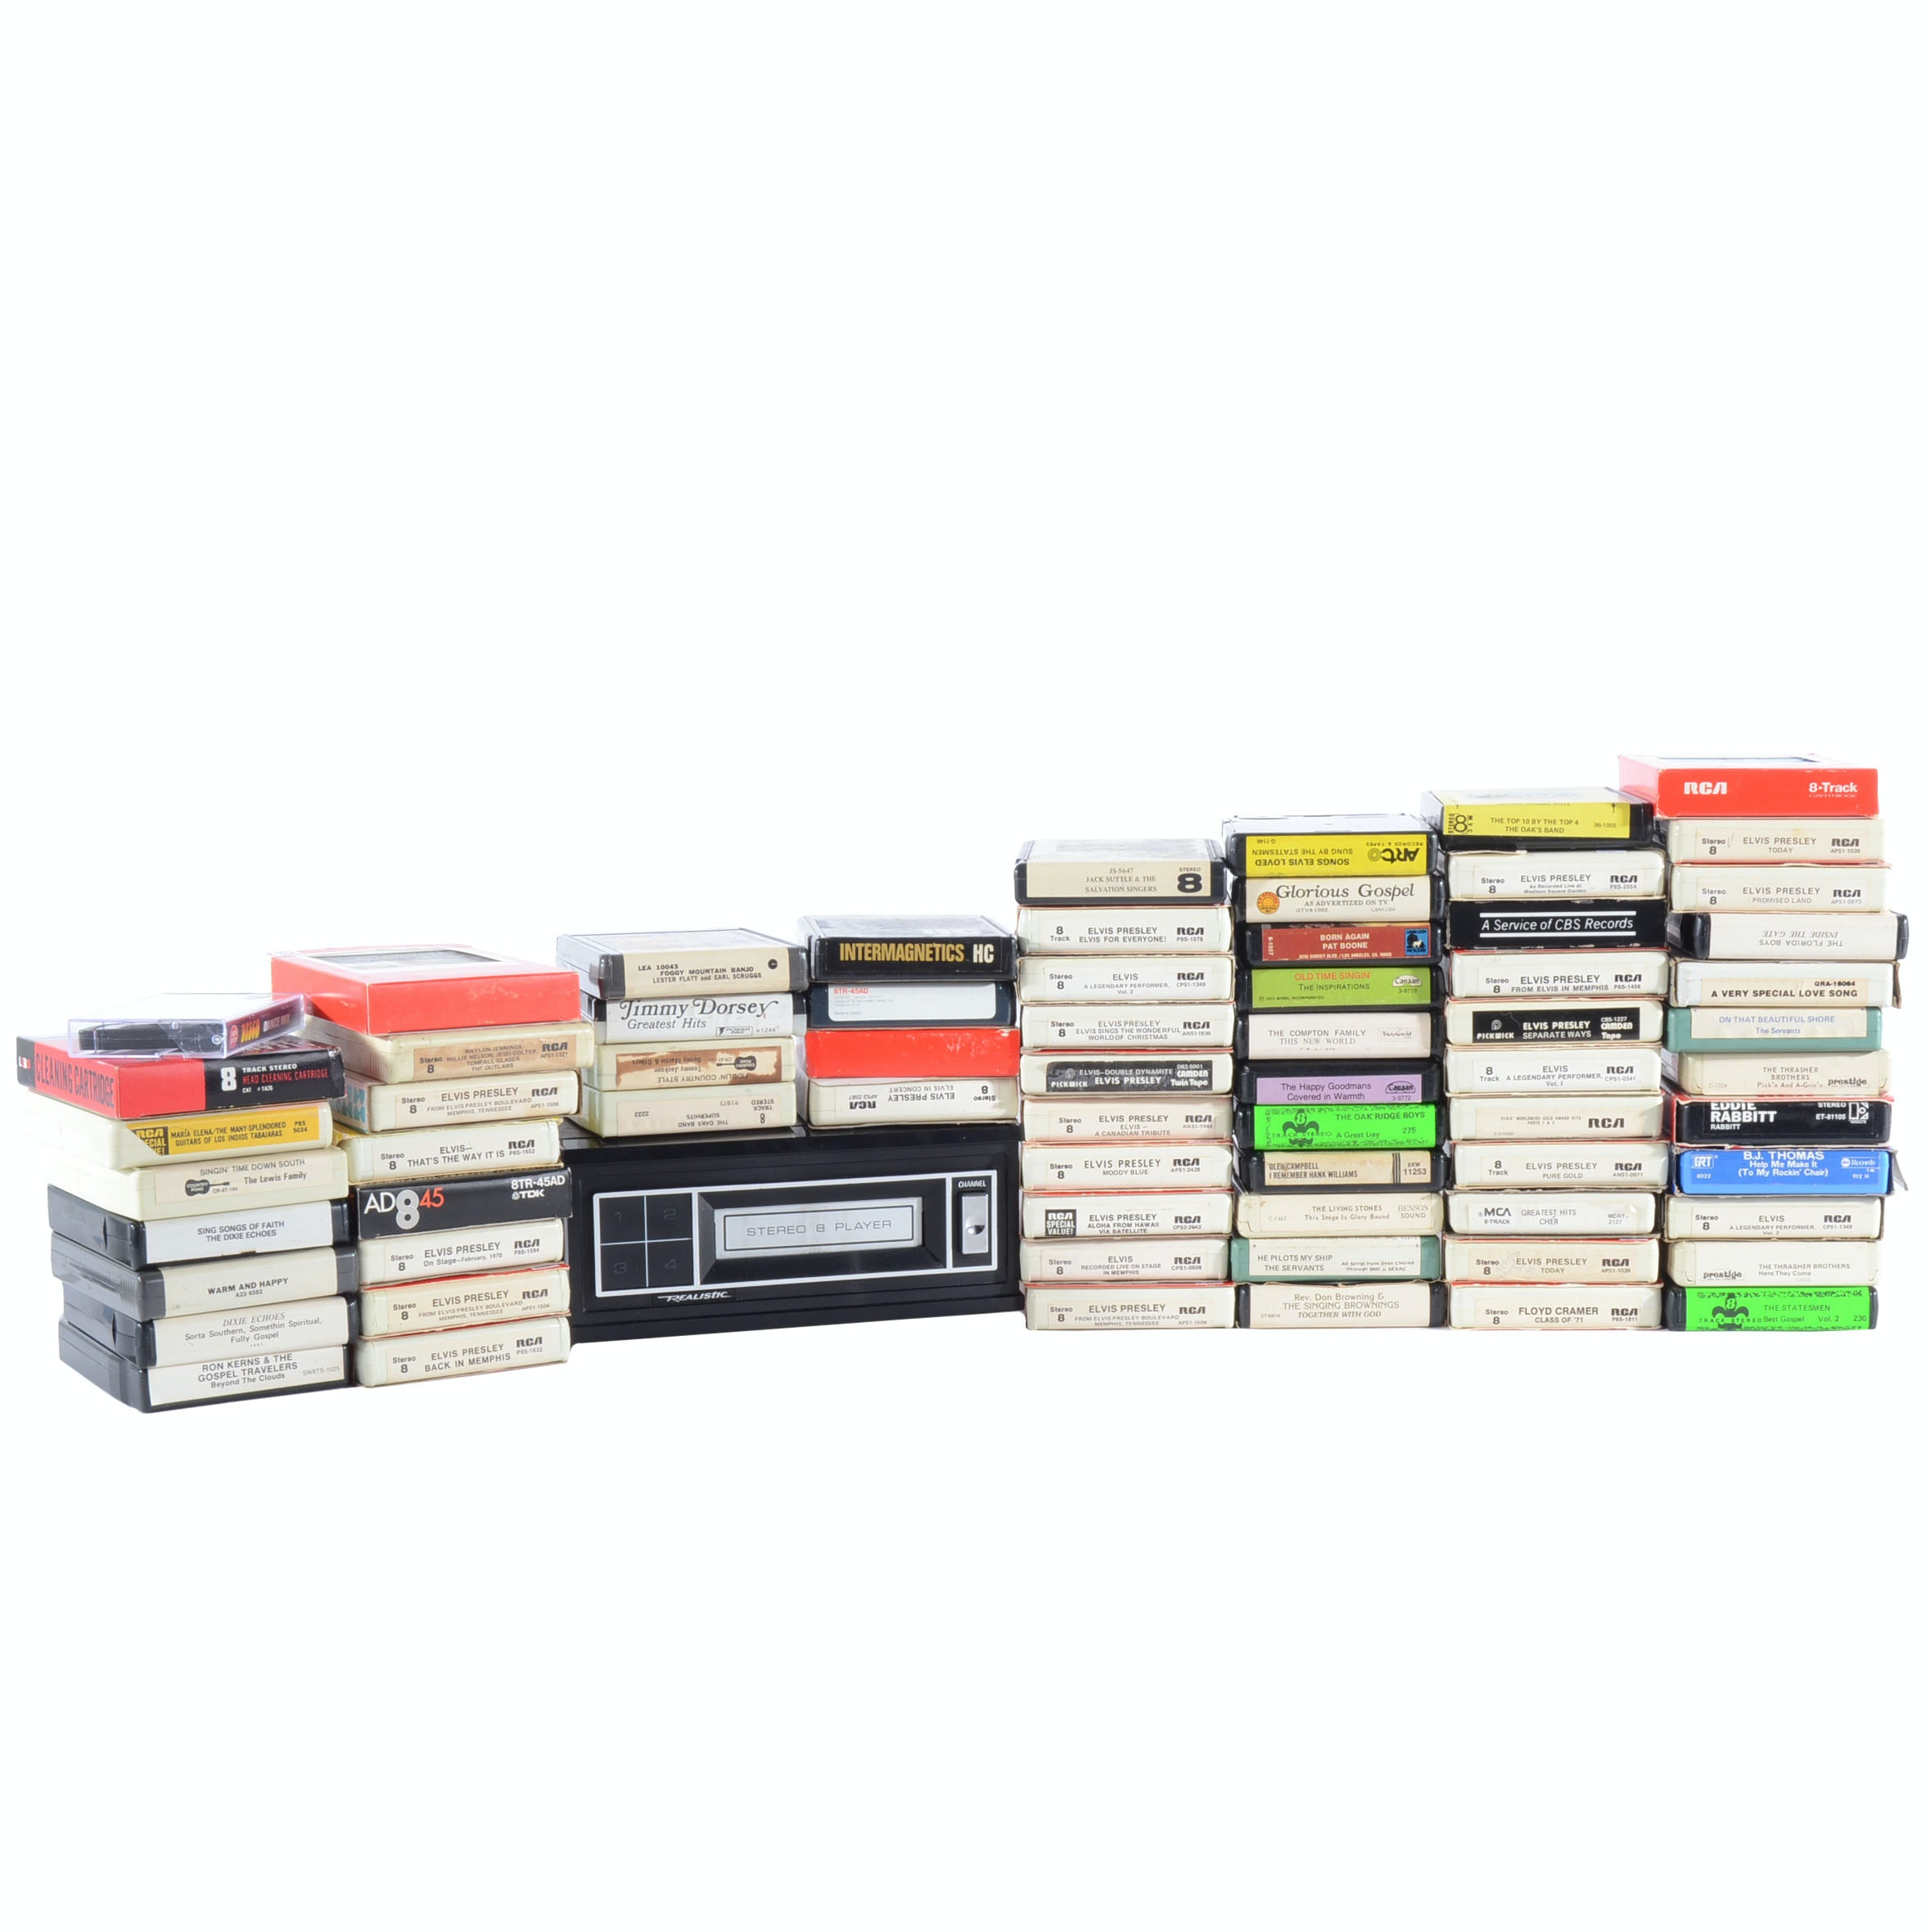 Vintage 8-Track Player and Collection of Tapes